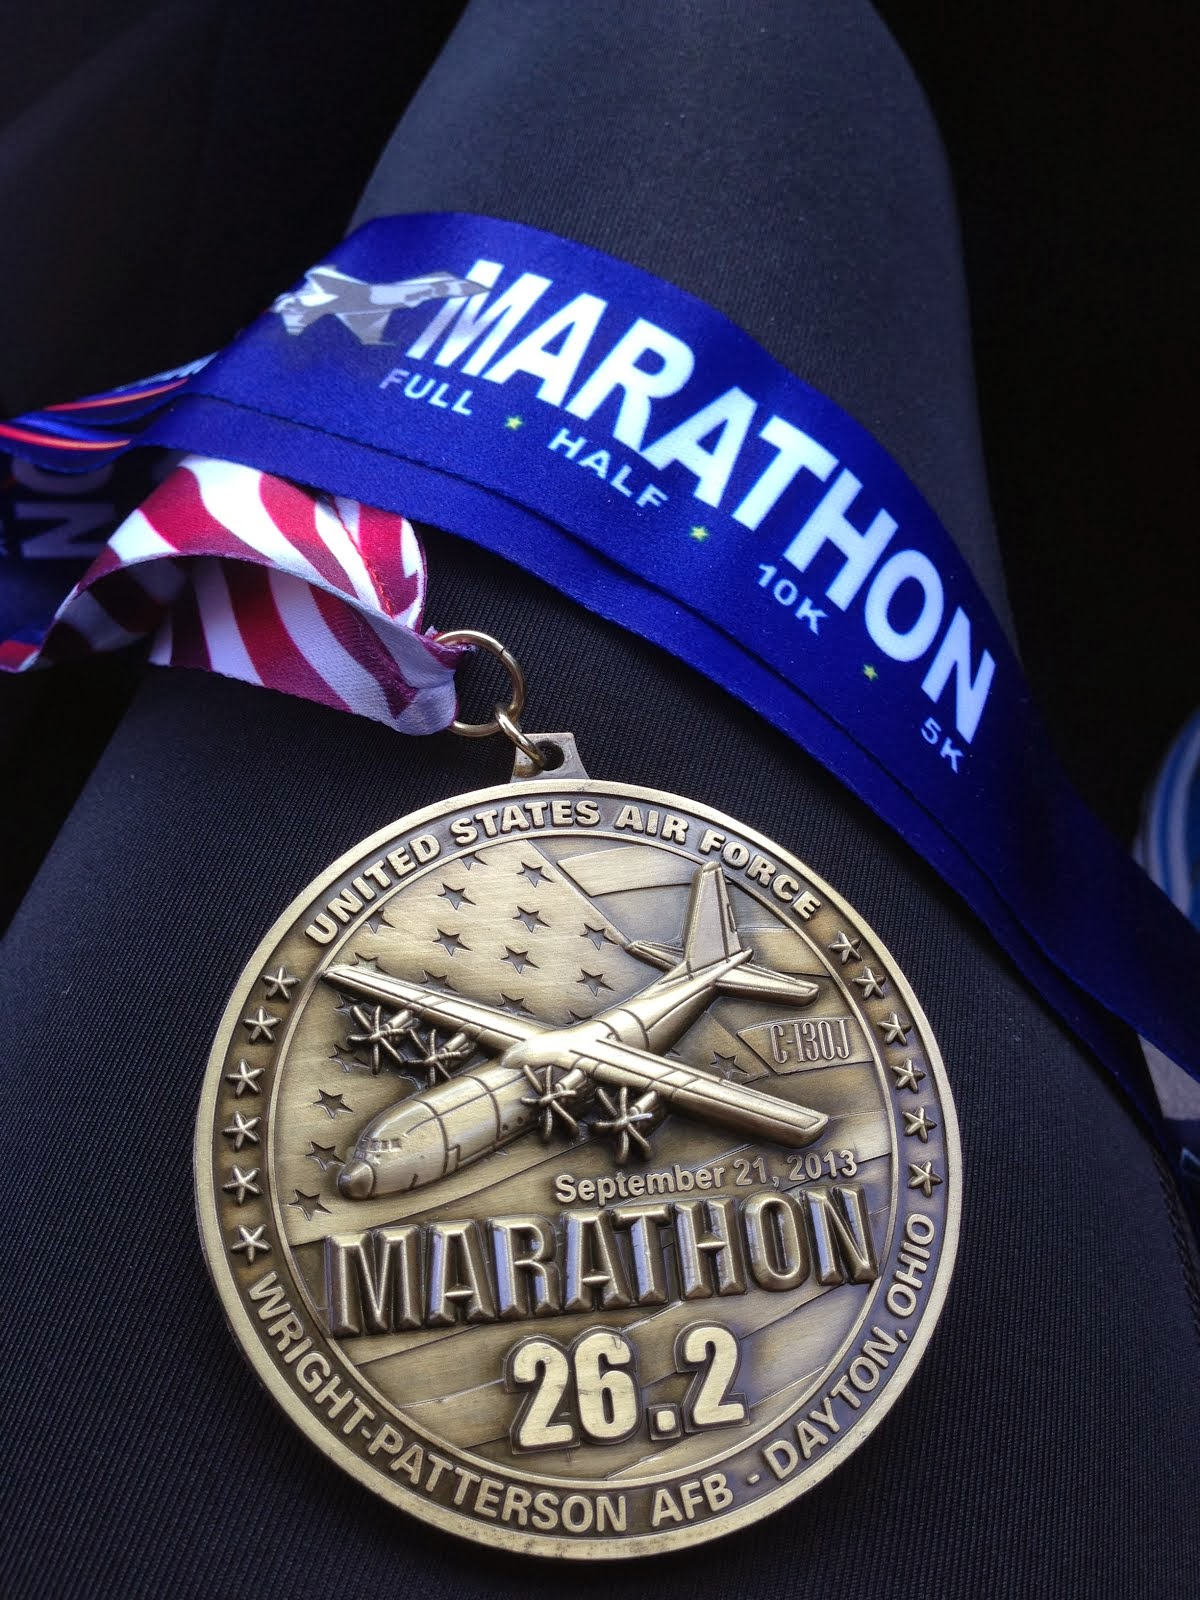 Air Force Marathon (09.21.2013)